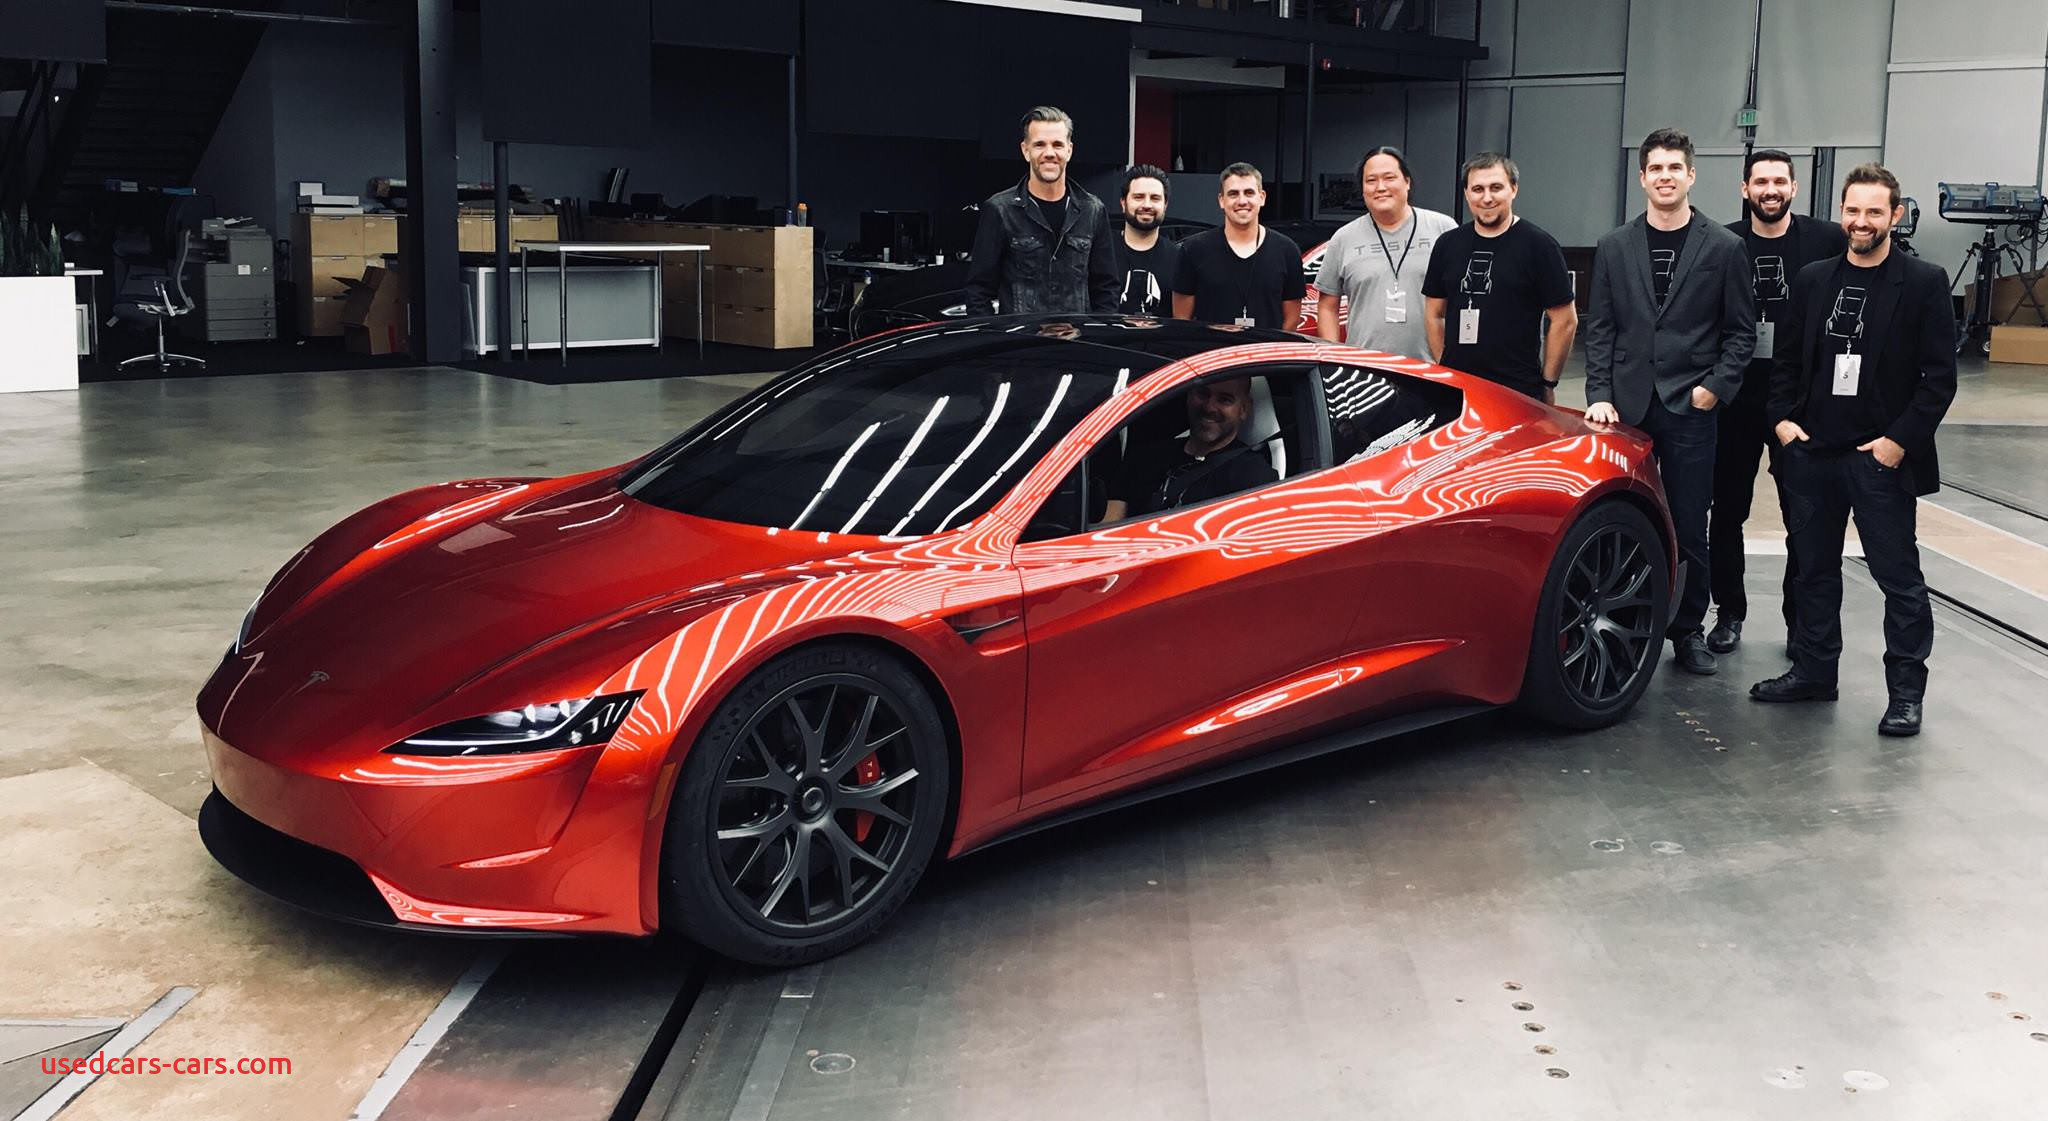 Where Tesla Car From Fresh New Photos Provide An Interesting Look at the Tesla